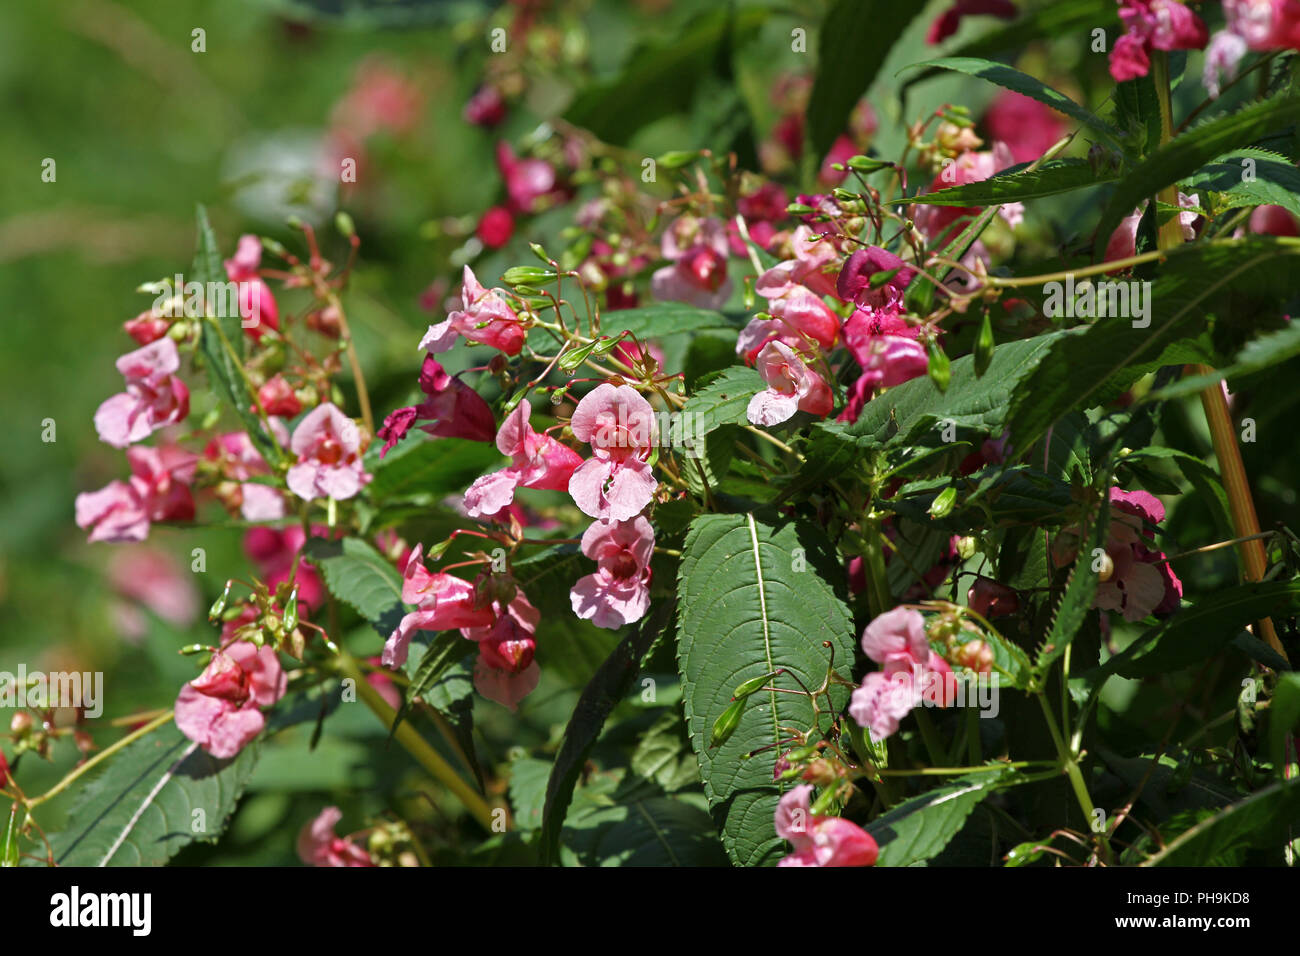 Garden Impatiens Stock Photos Garden Impatiens Stock Images Alamy